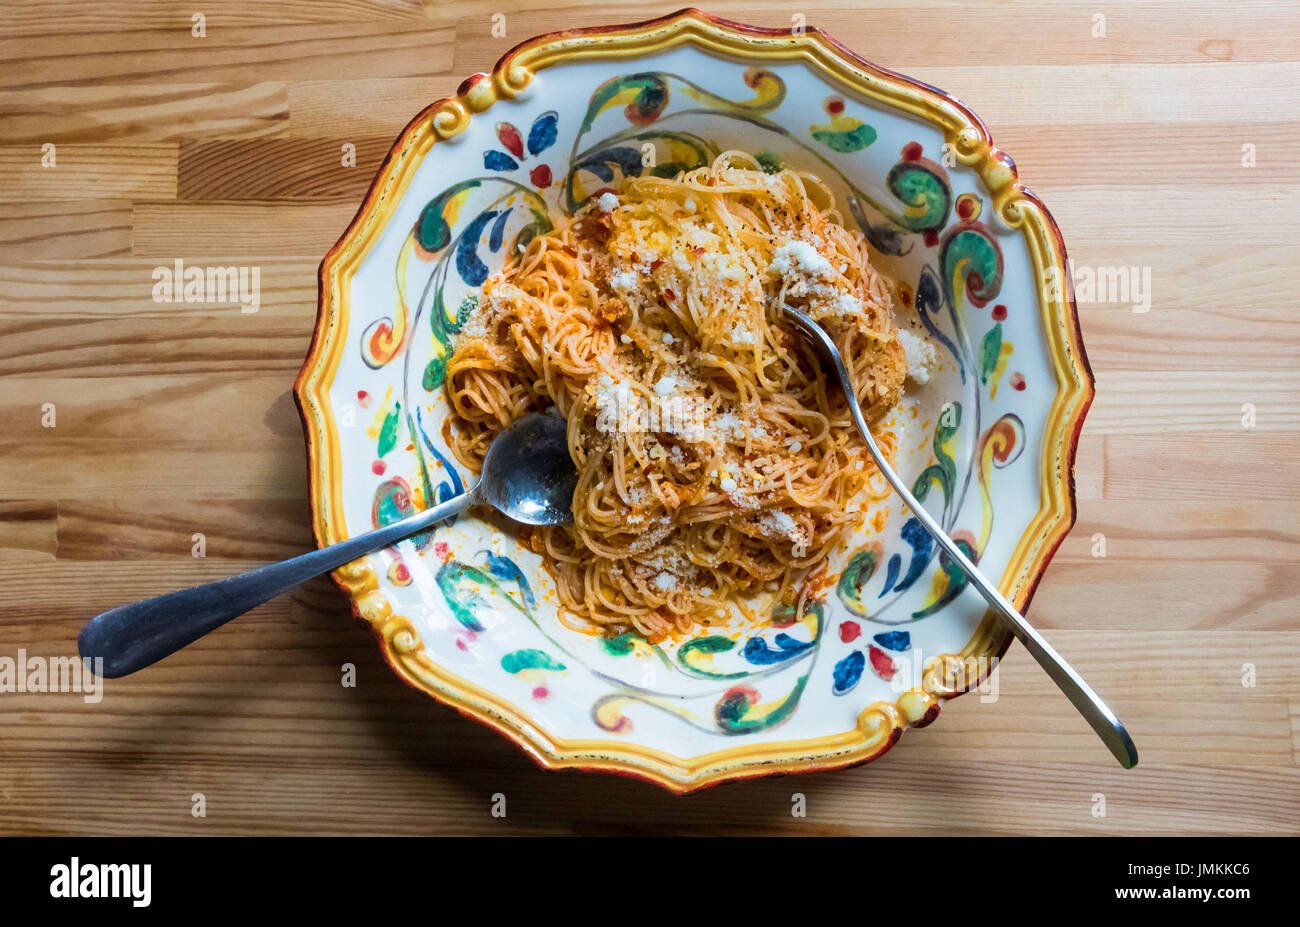 Spaghettini, or thin pasta, with tomato, onion, butter and Parmigiano-Reggiano (Parmesan) cheese. - Stock Image